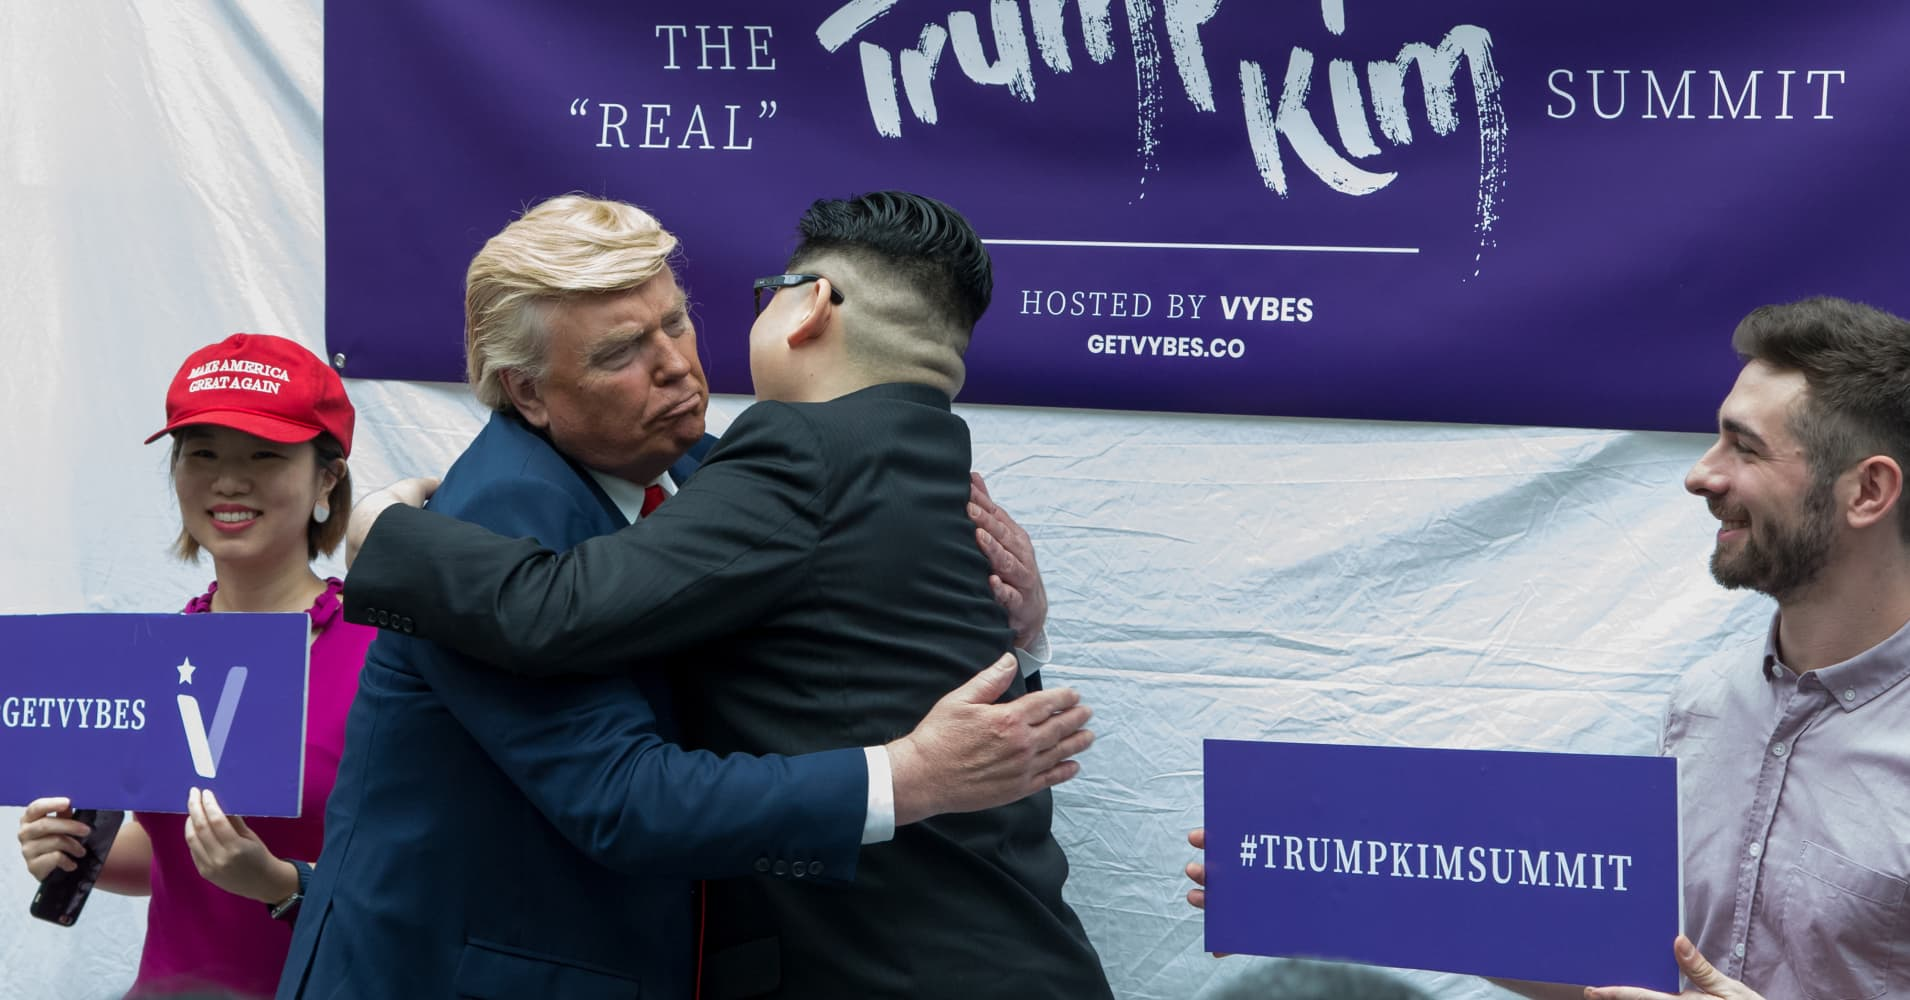 Businesses Capitalize On Trump Kim Summit With Impersonators And More